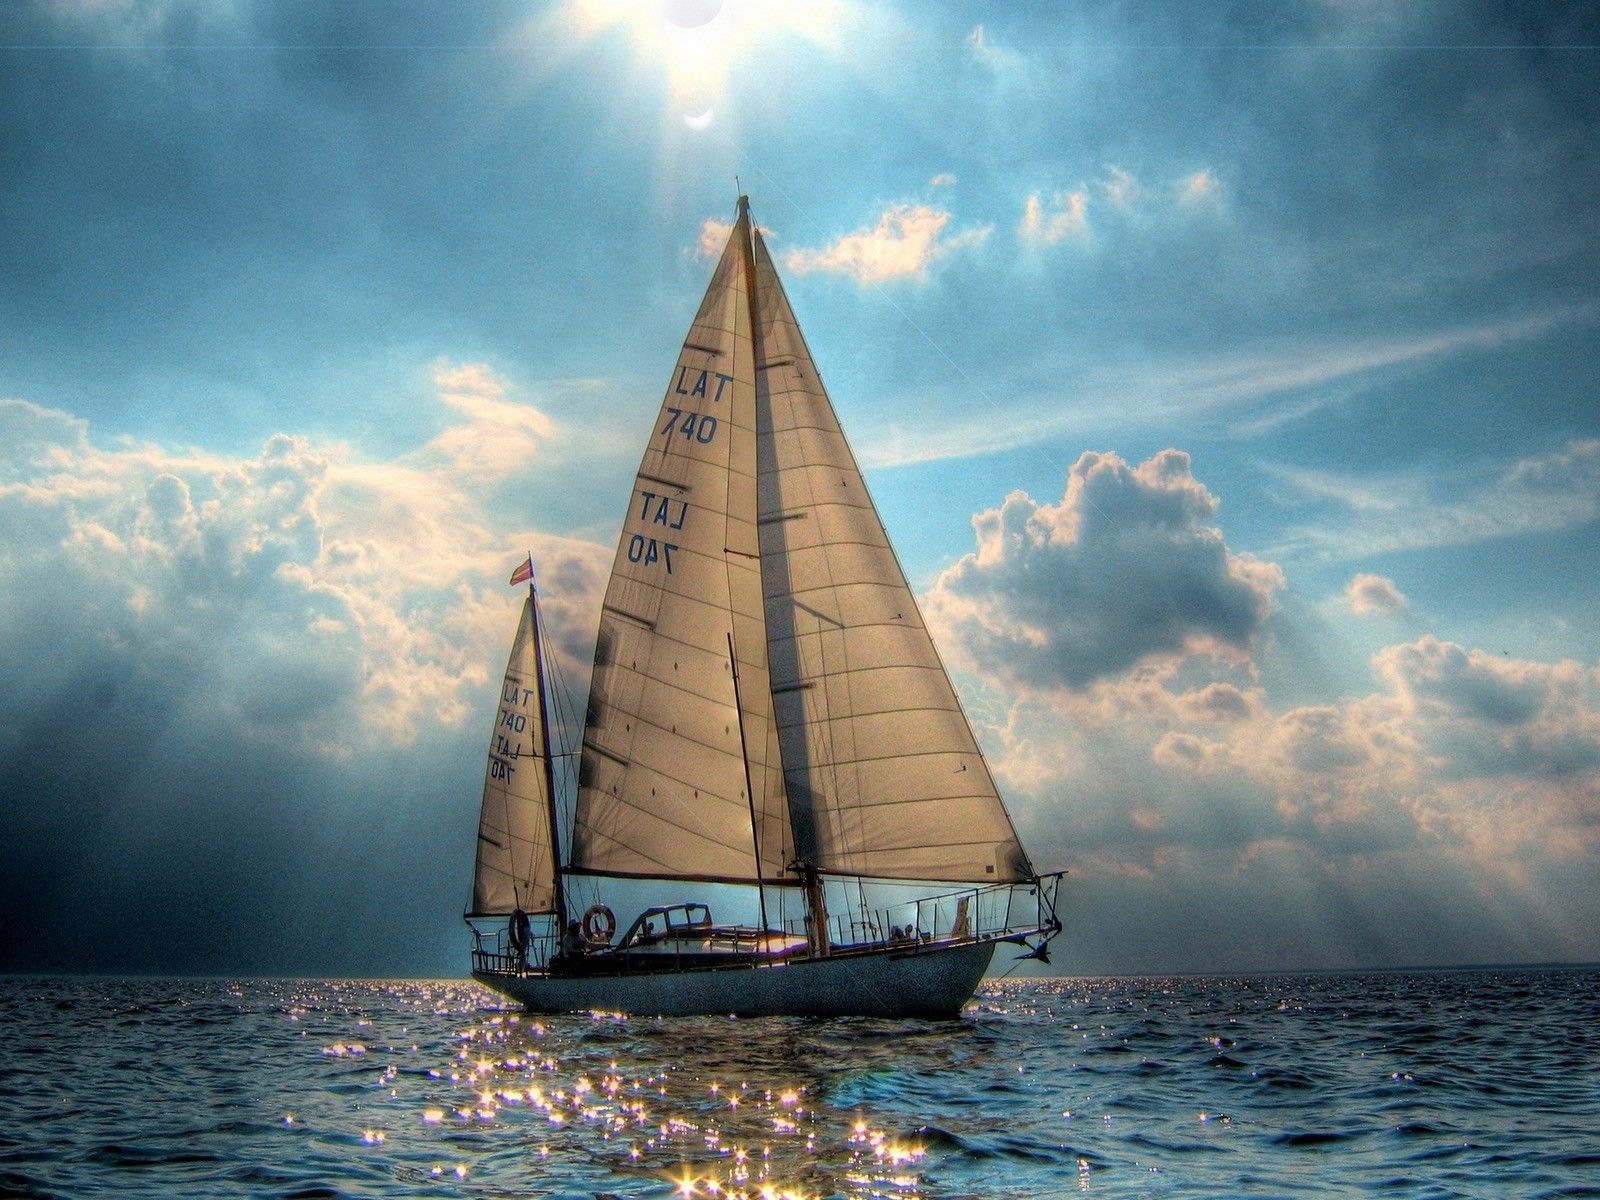 Best 40+ Sail Wallpapers on HipWallpapers